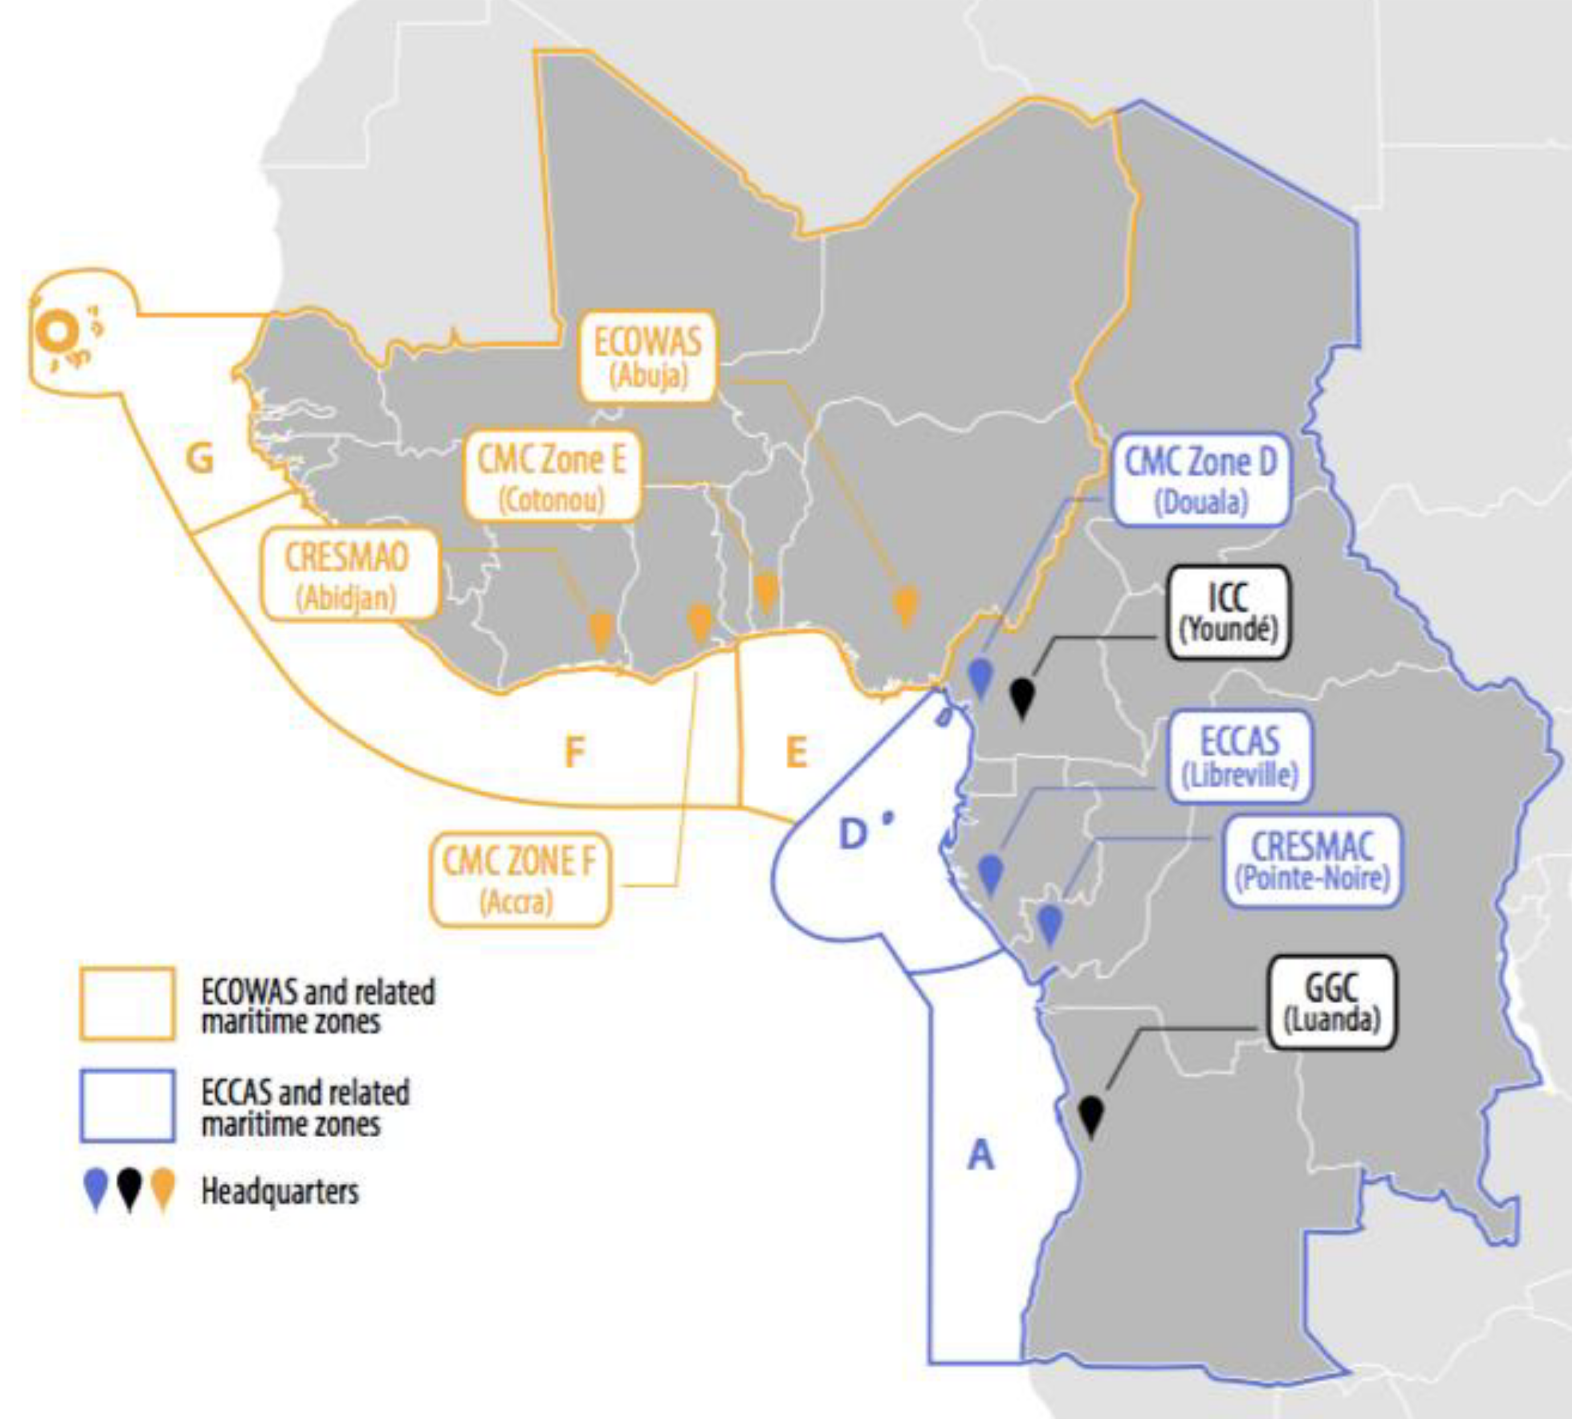 ICC and CMC Gulf of Guinea outline with ECOWAS, ECCAS, and related maritime zones